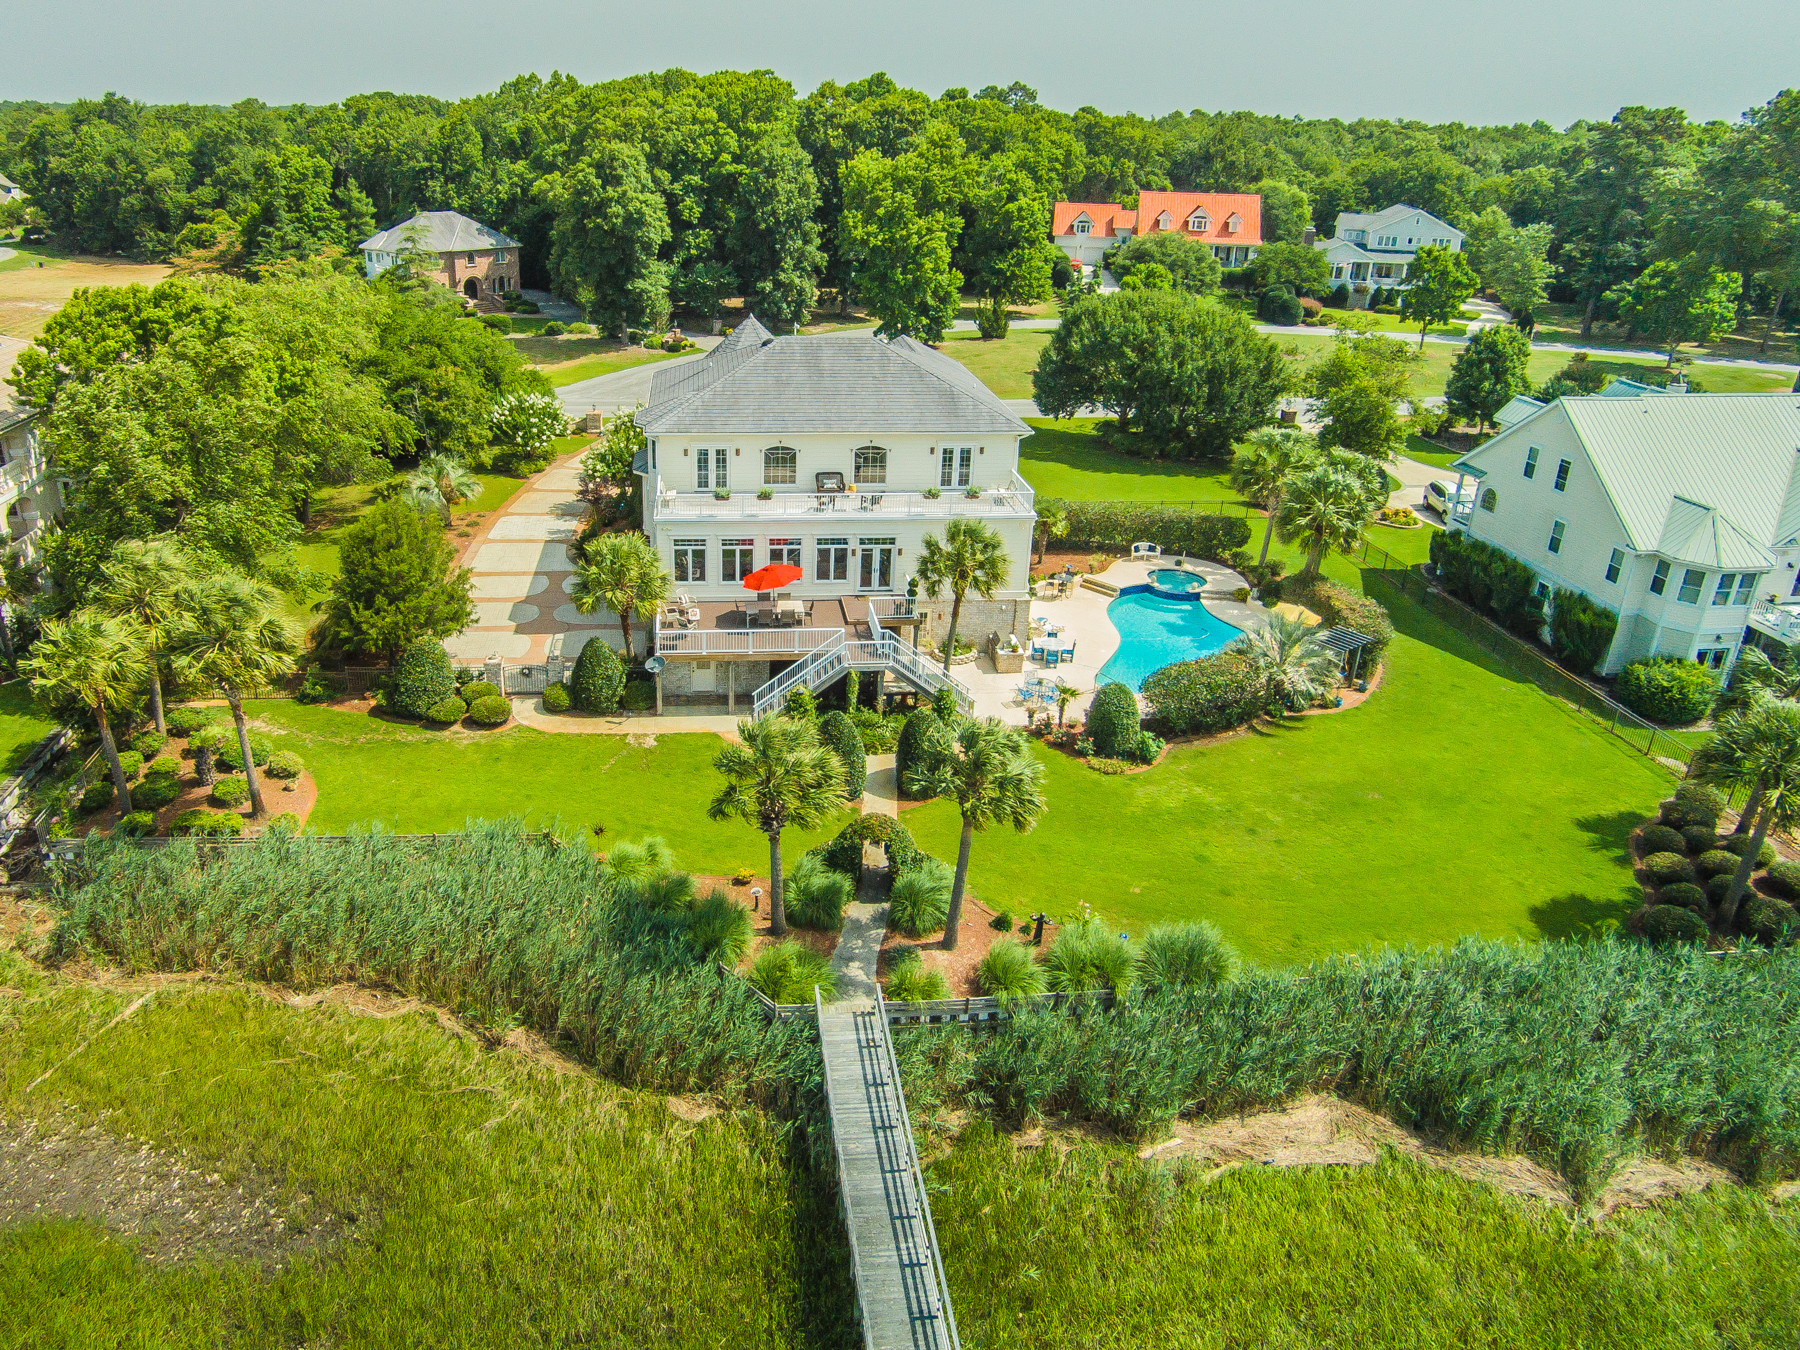 Single Family Home for Sale at Luxurious Waterfront Haven 2769 Pinecrest Drive Southport, North Carolina 28461 United States